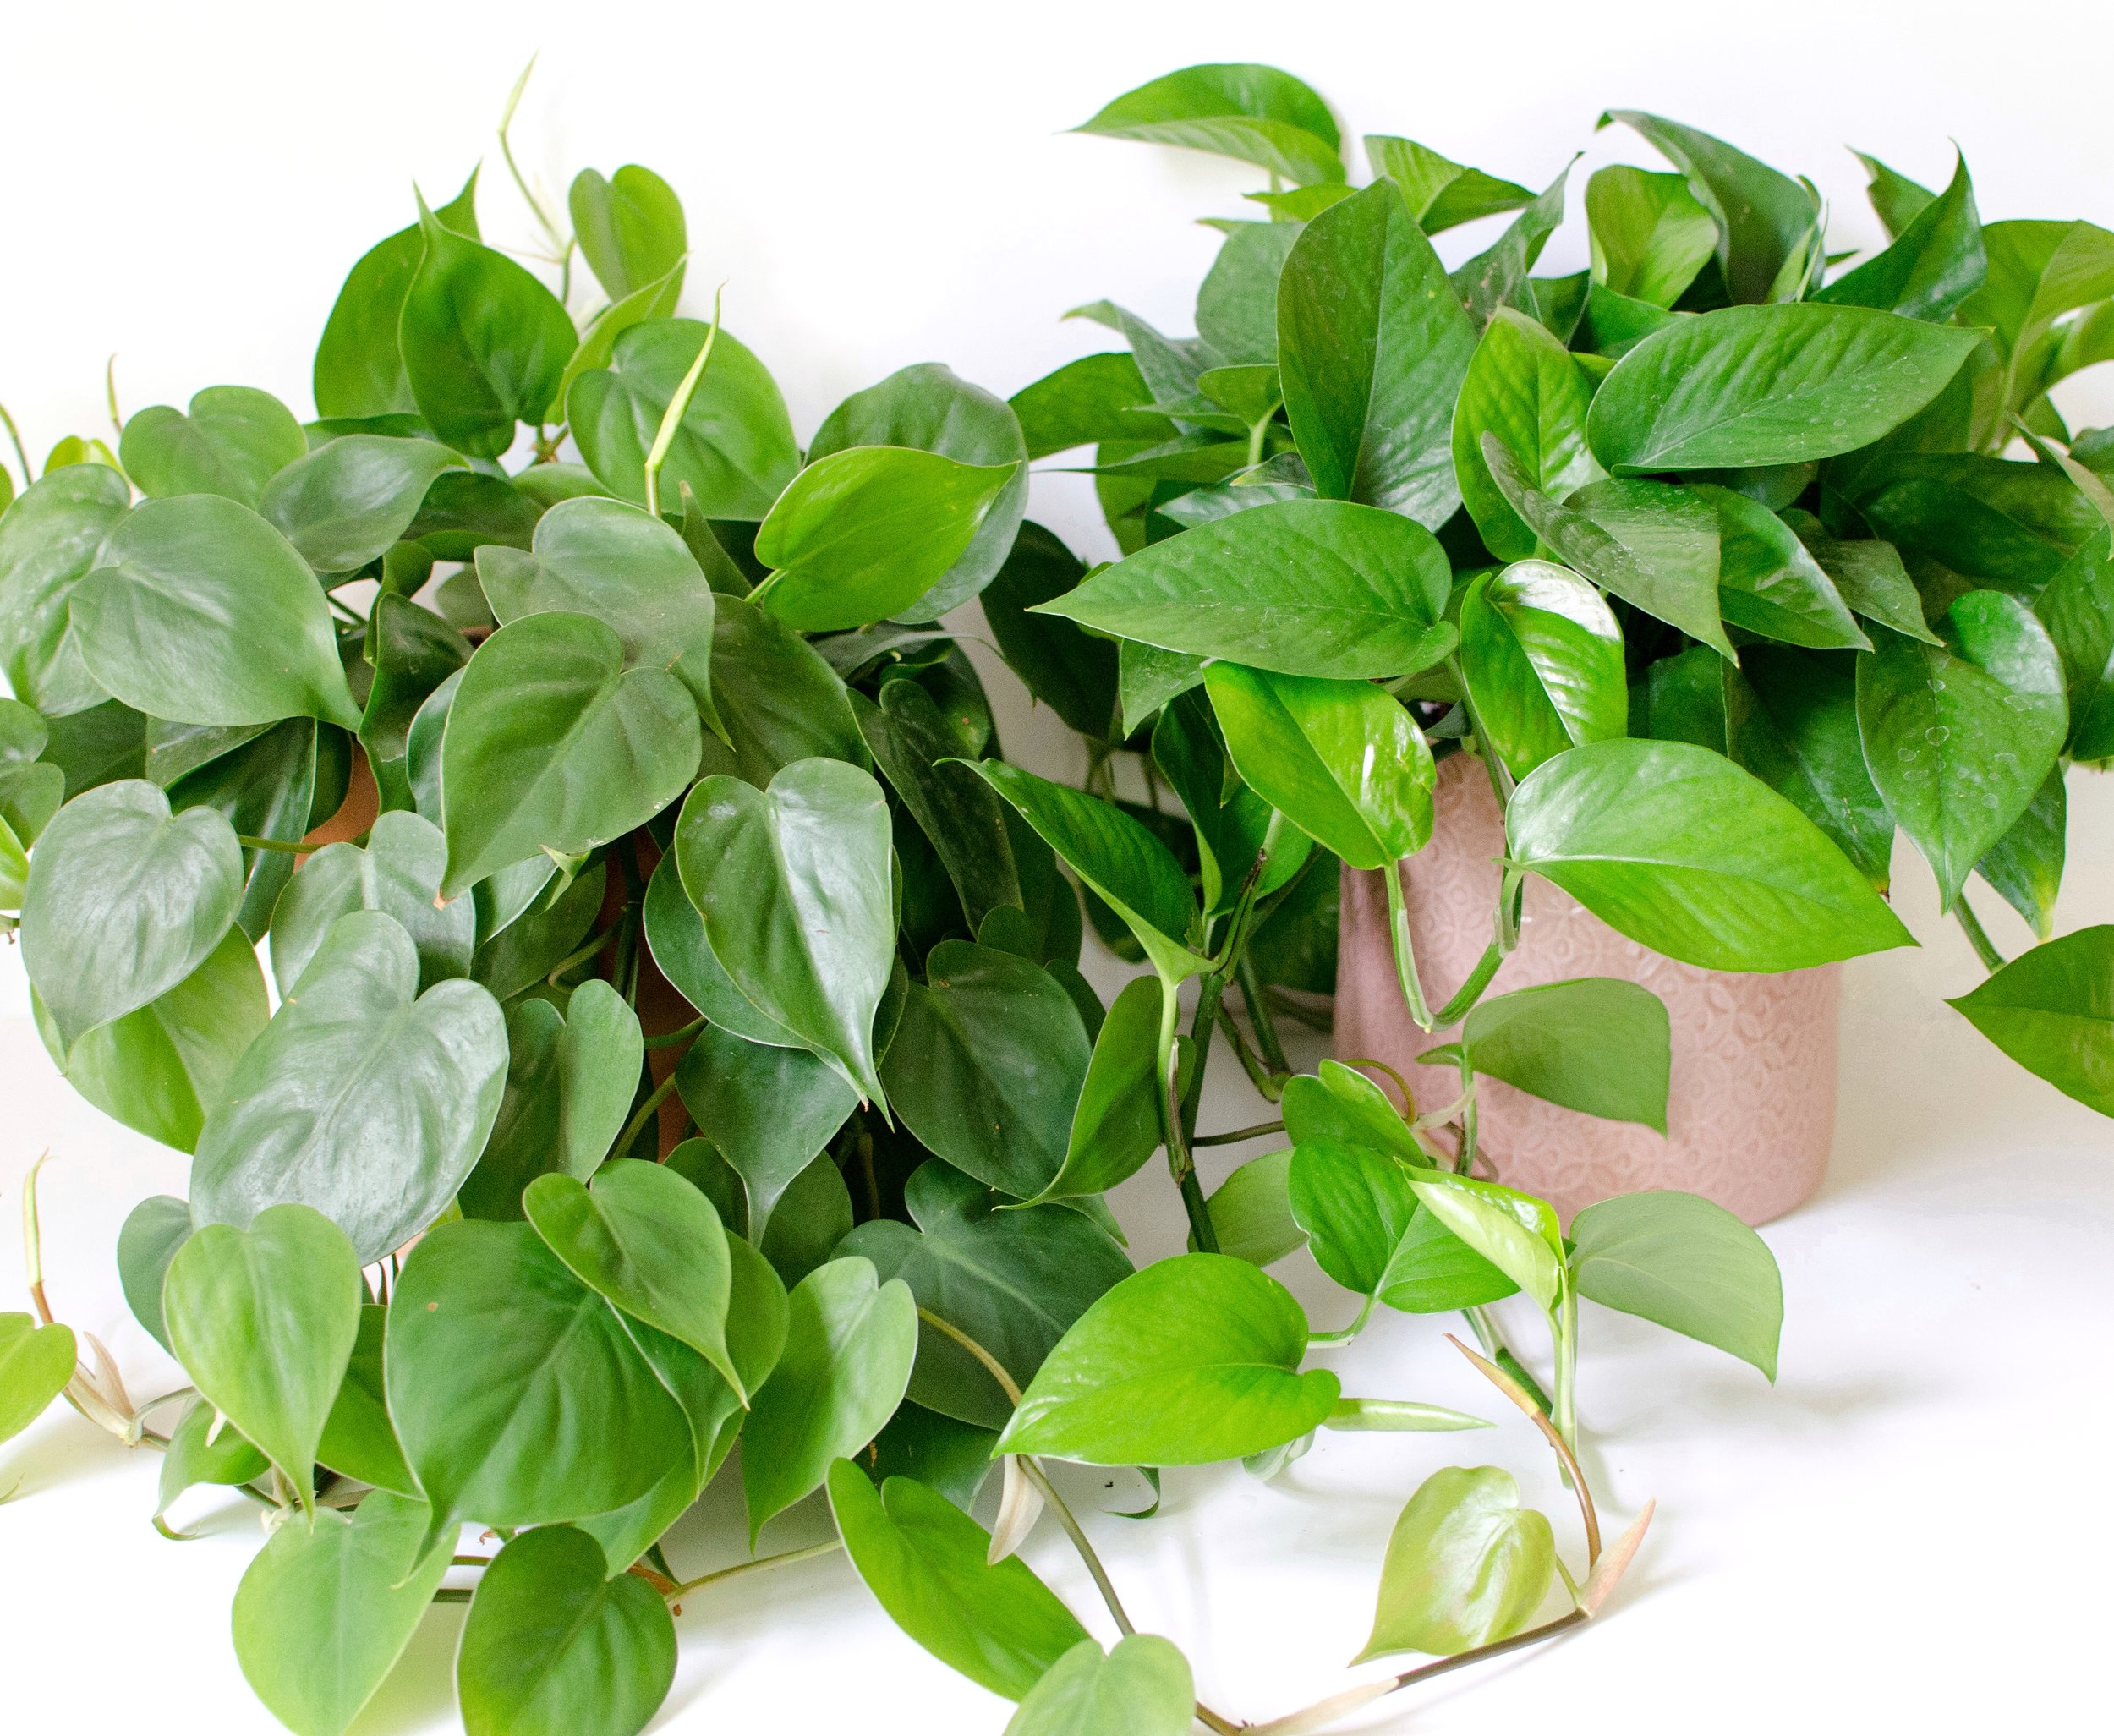 Know your plants: how to tell the difference between a ... White And Green Leaves House Plant Identification on epipremnum pothos house plant, serene peace plant, white calla lily plants, potted white azalea plant, white and green leaves weed,